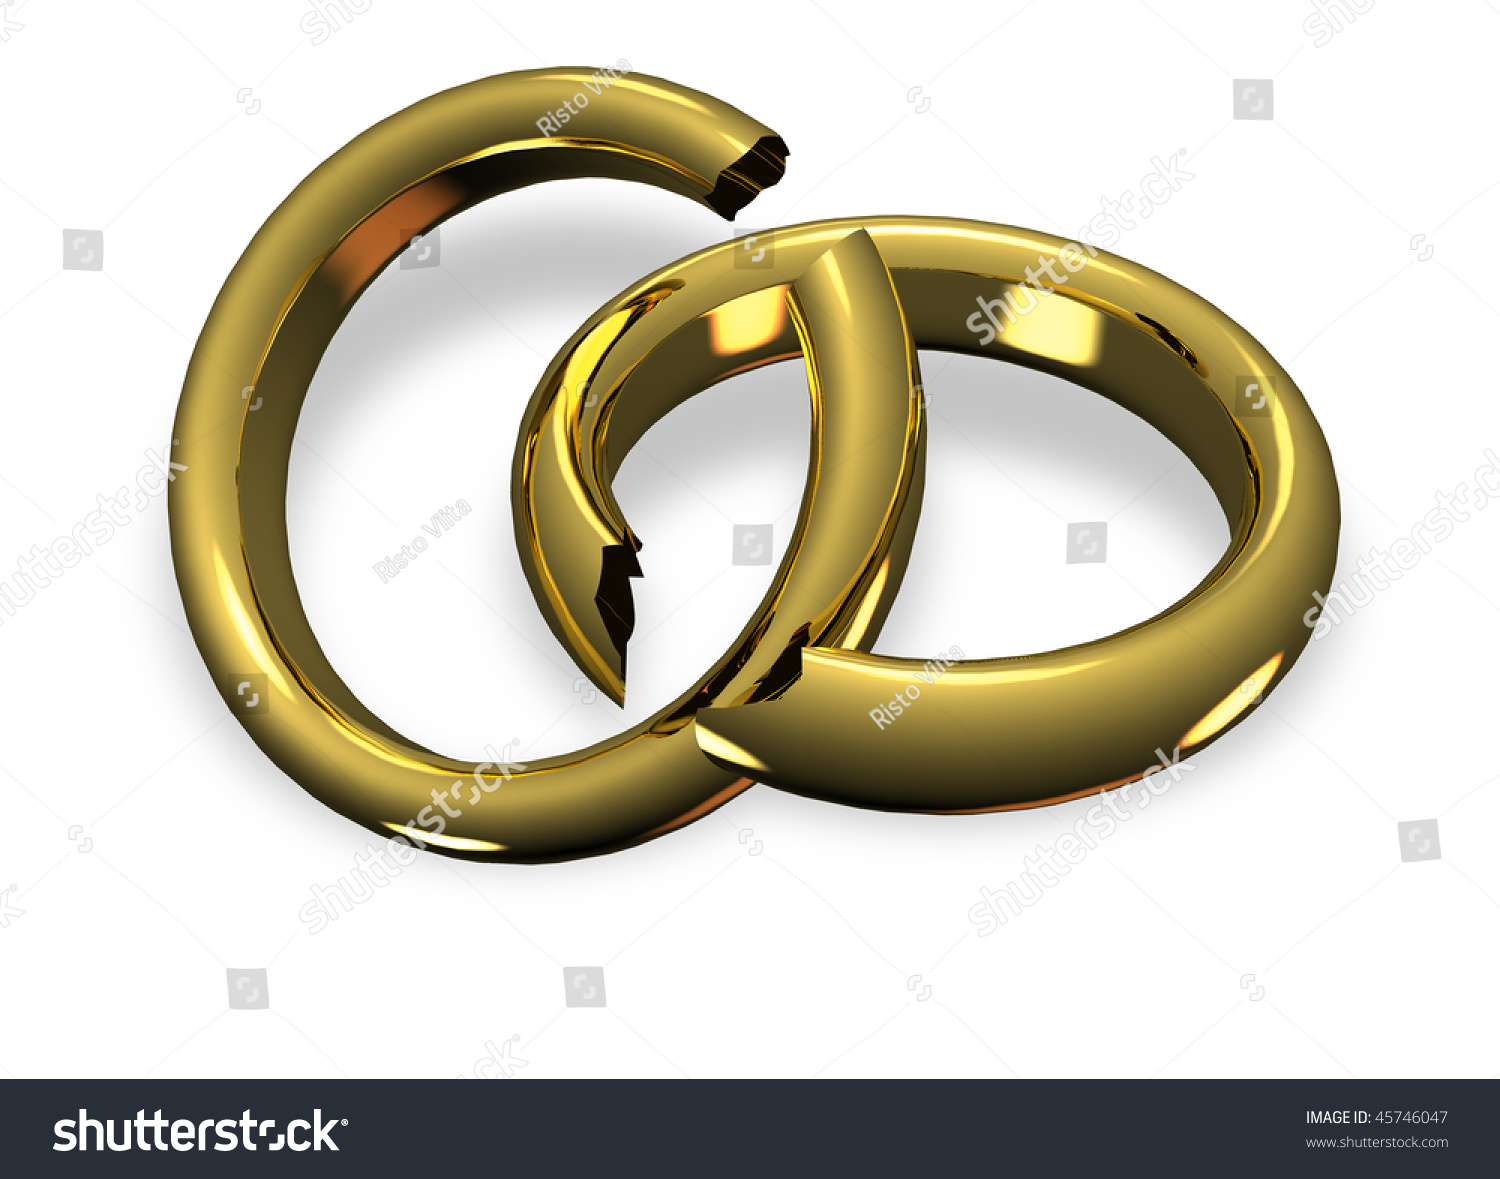 vector rings broken image stock photo bigstock wedding